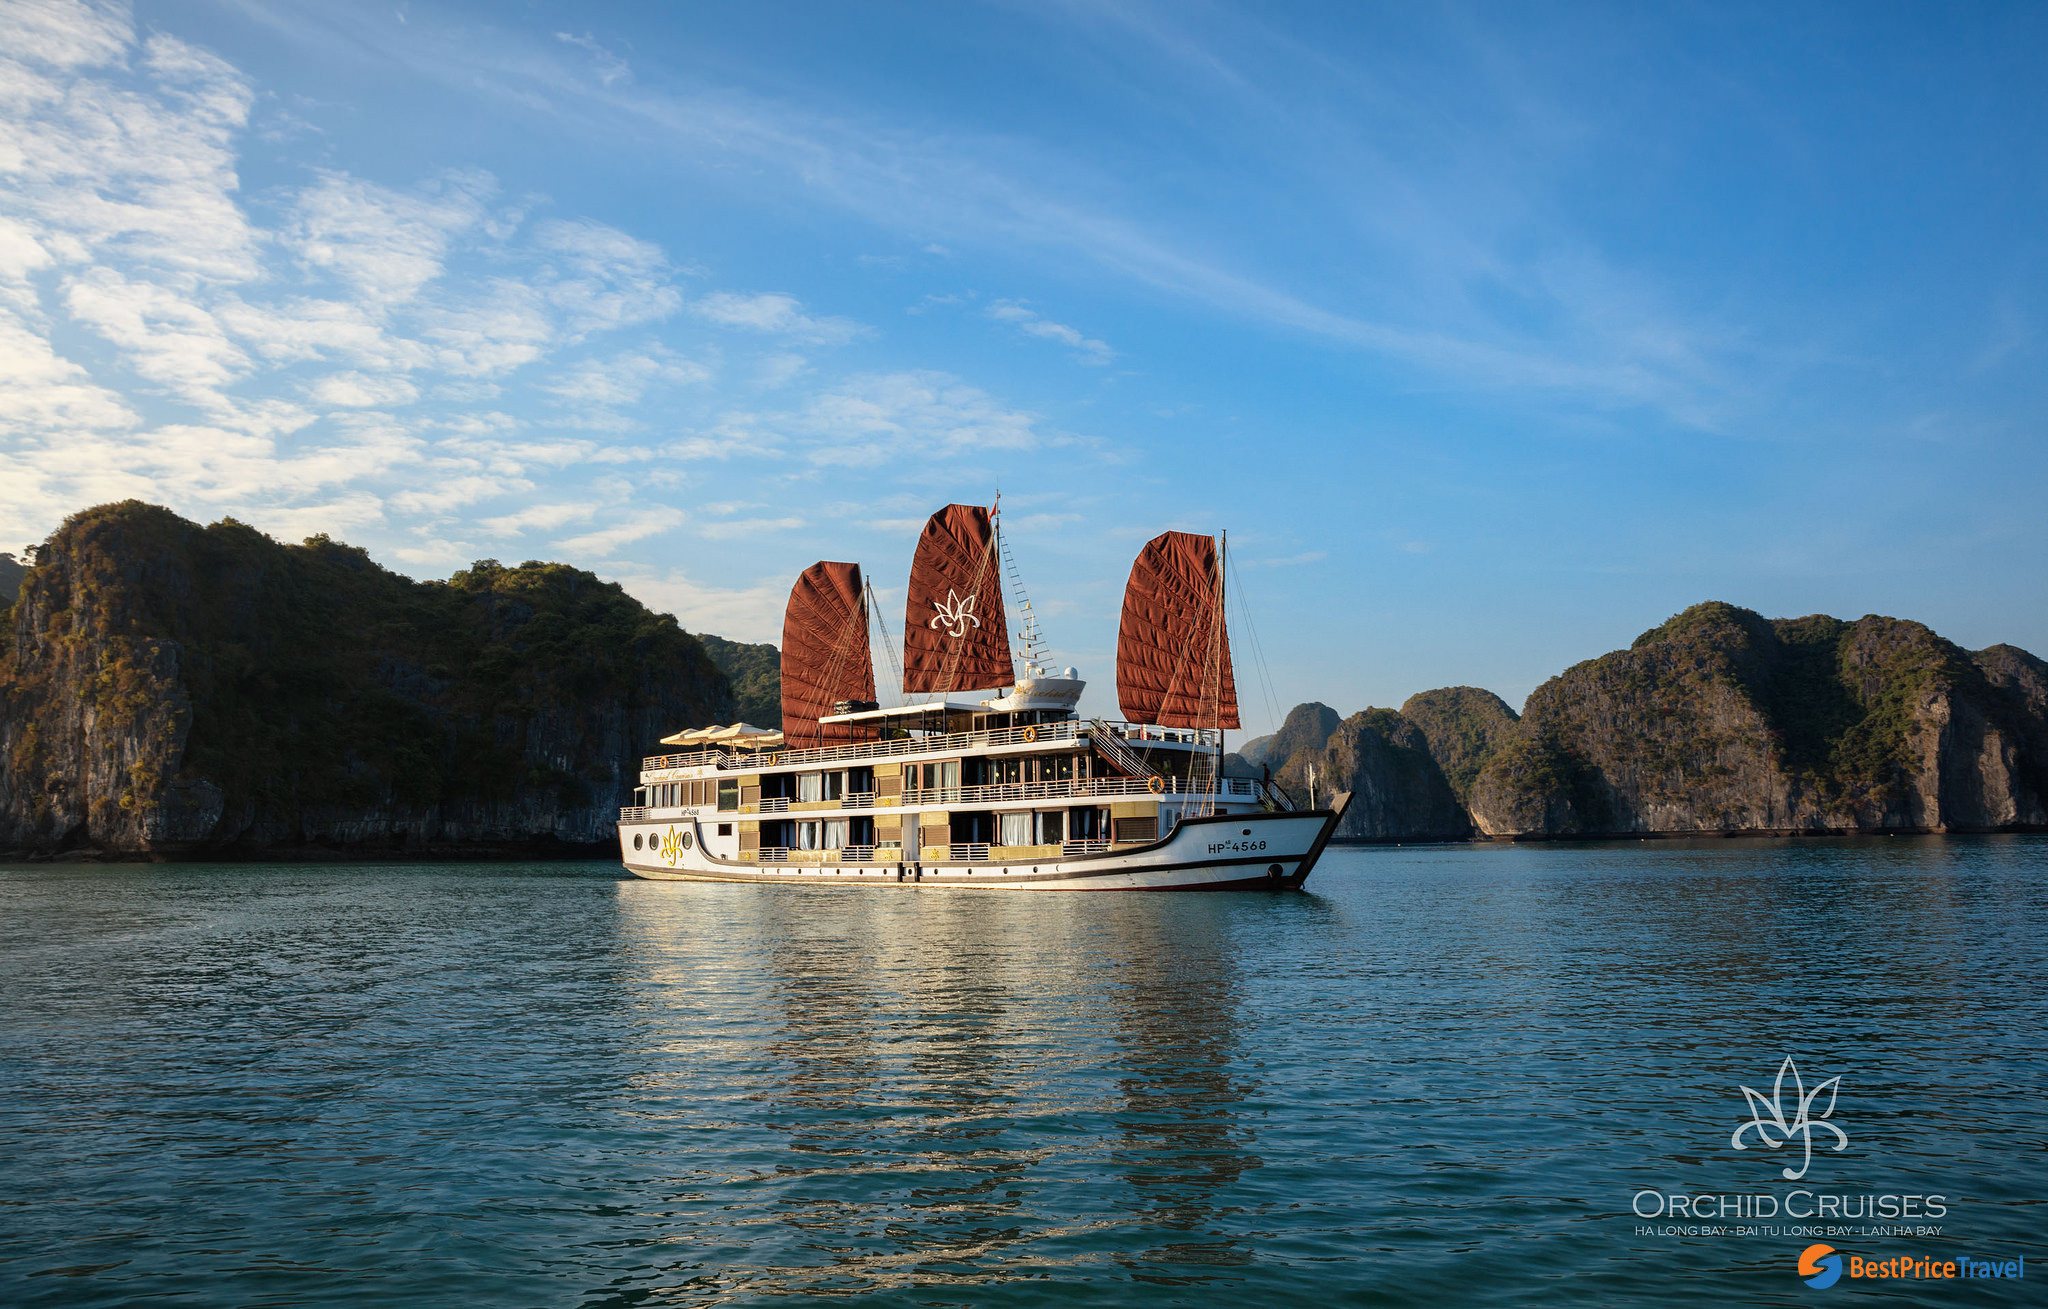 Lan Ha Bay Orchid Cruises